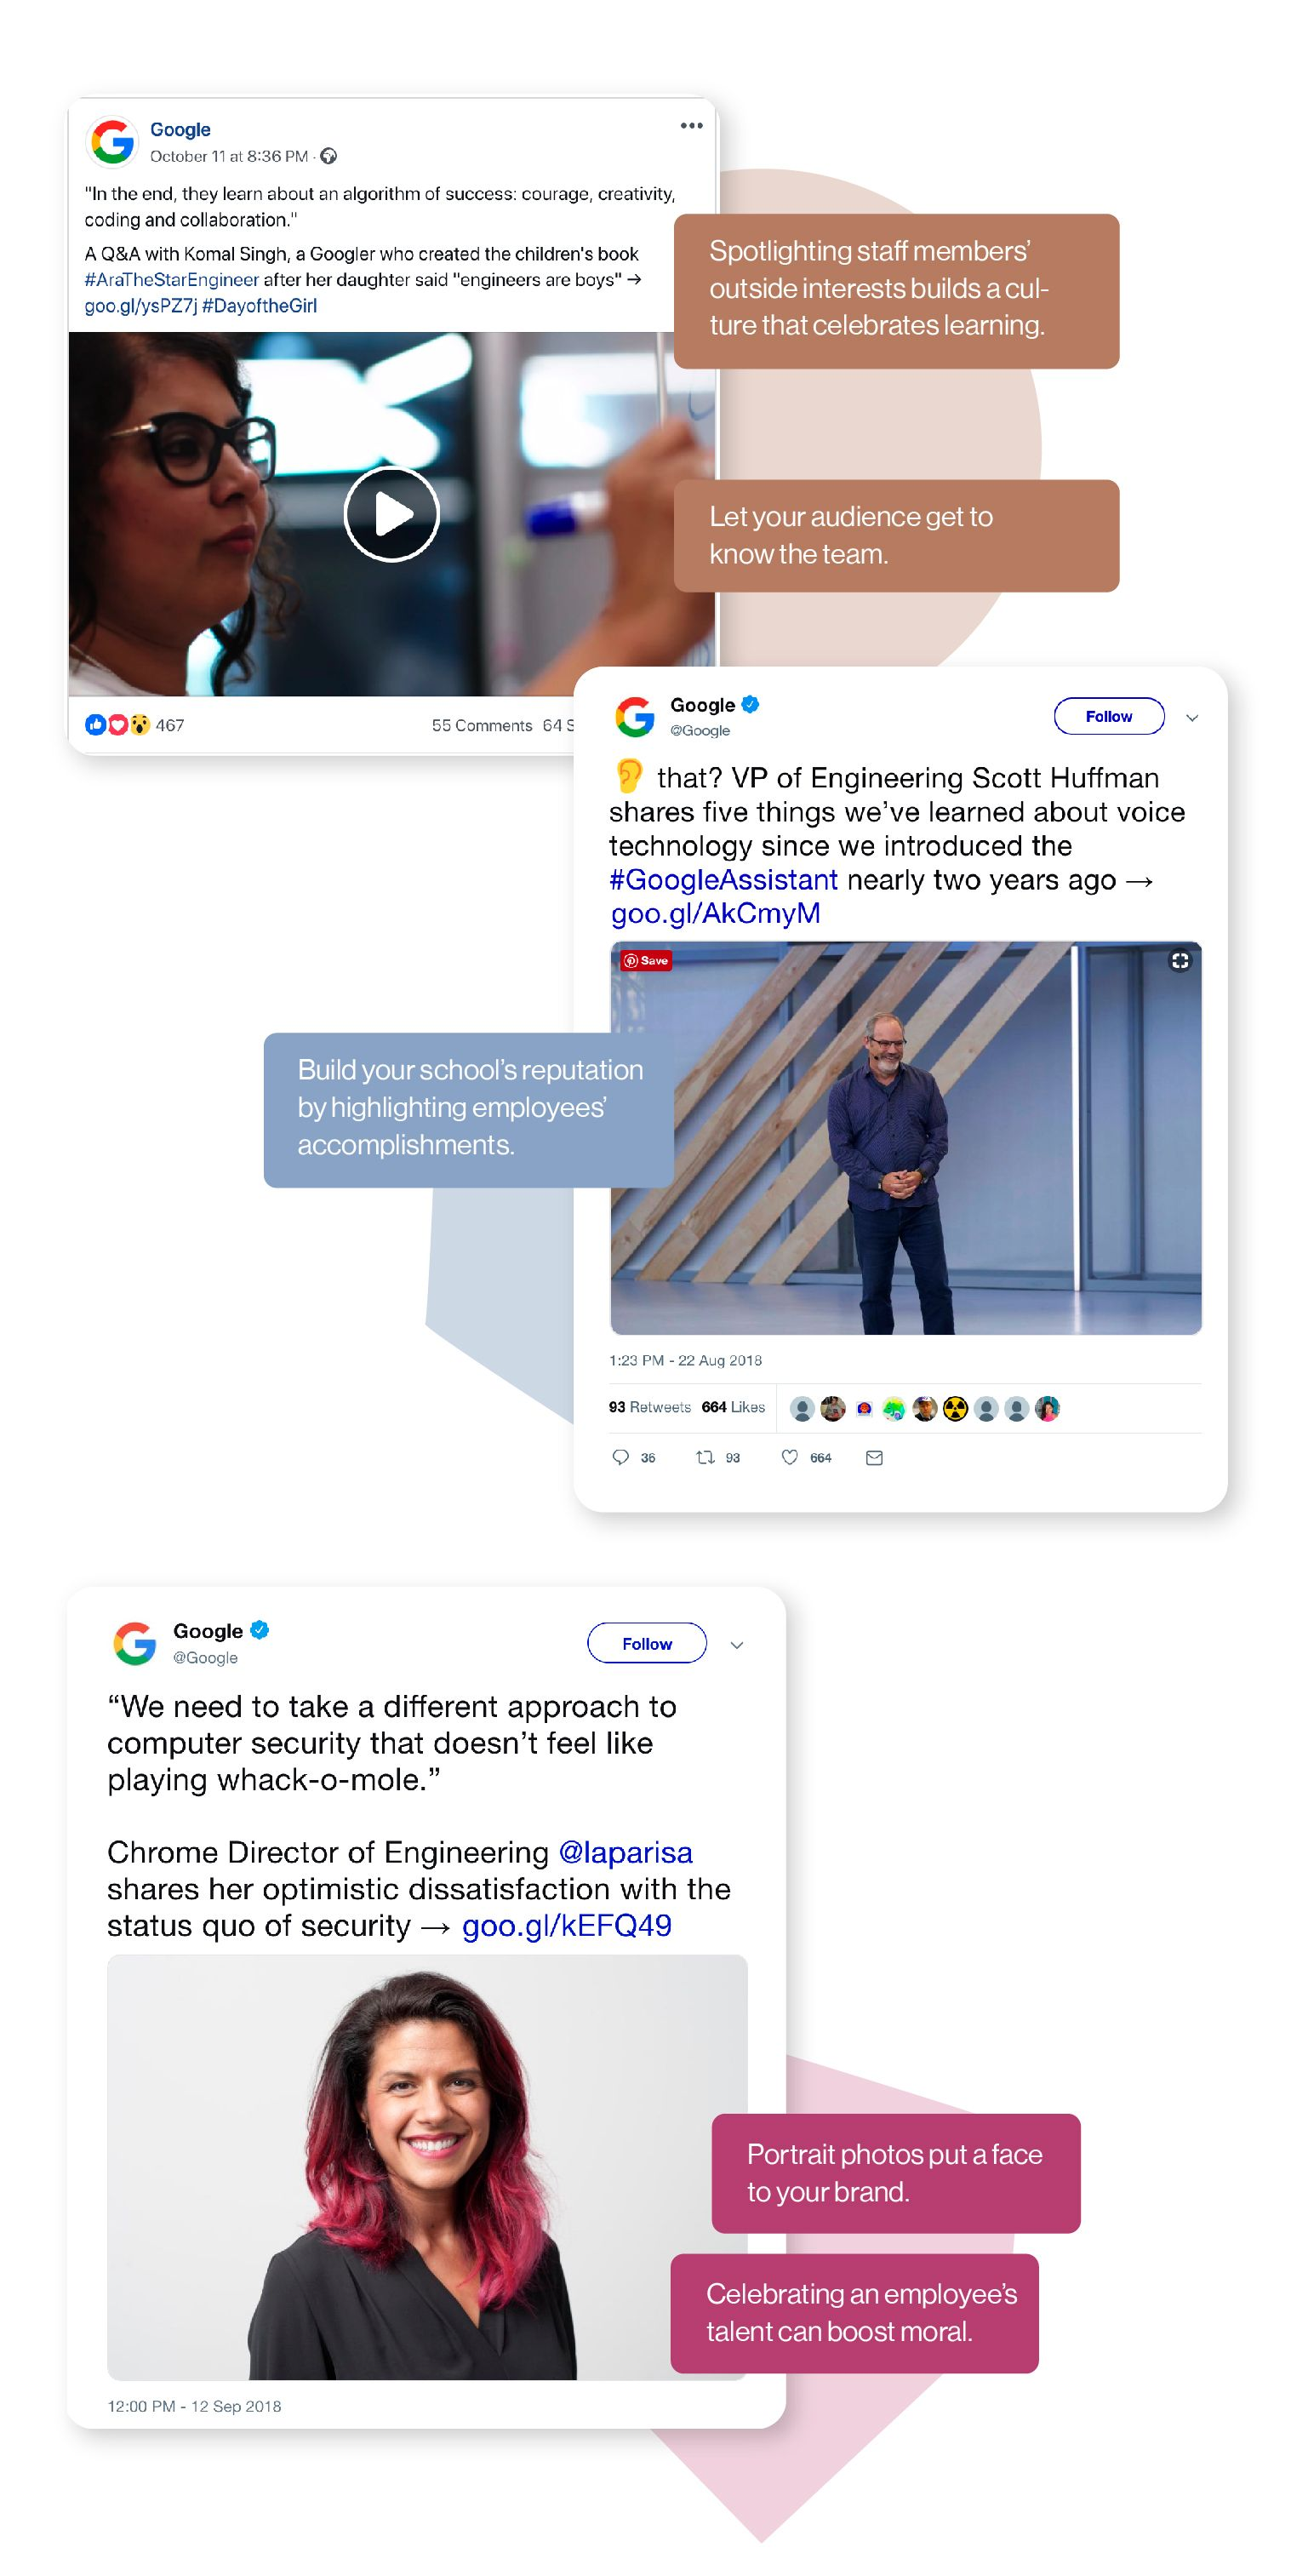 Image: Examples of Google's social media posts highlighting their employees. Spotlighting staff memmbers' outside interests builds a culture that celebrates learning. This lets your audience get to know the team, while building your school's reputation by highlighting employee accomplishments.